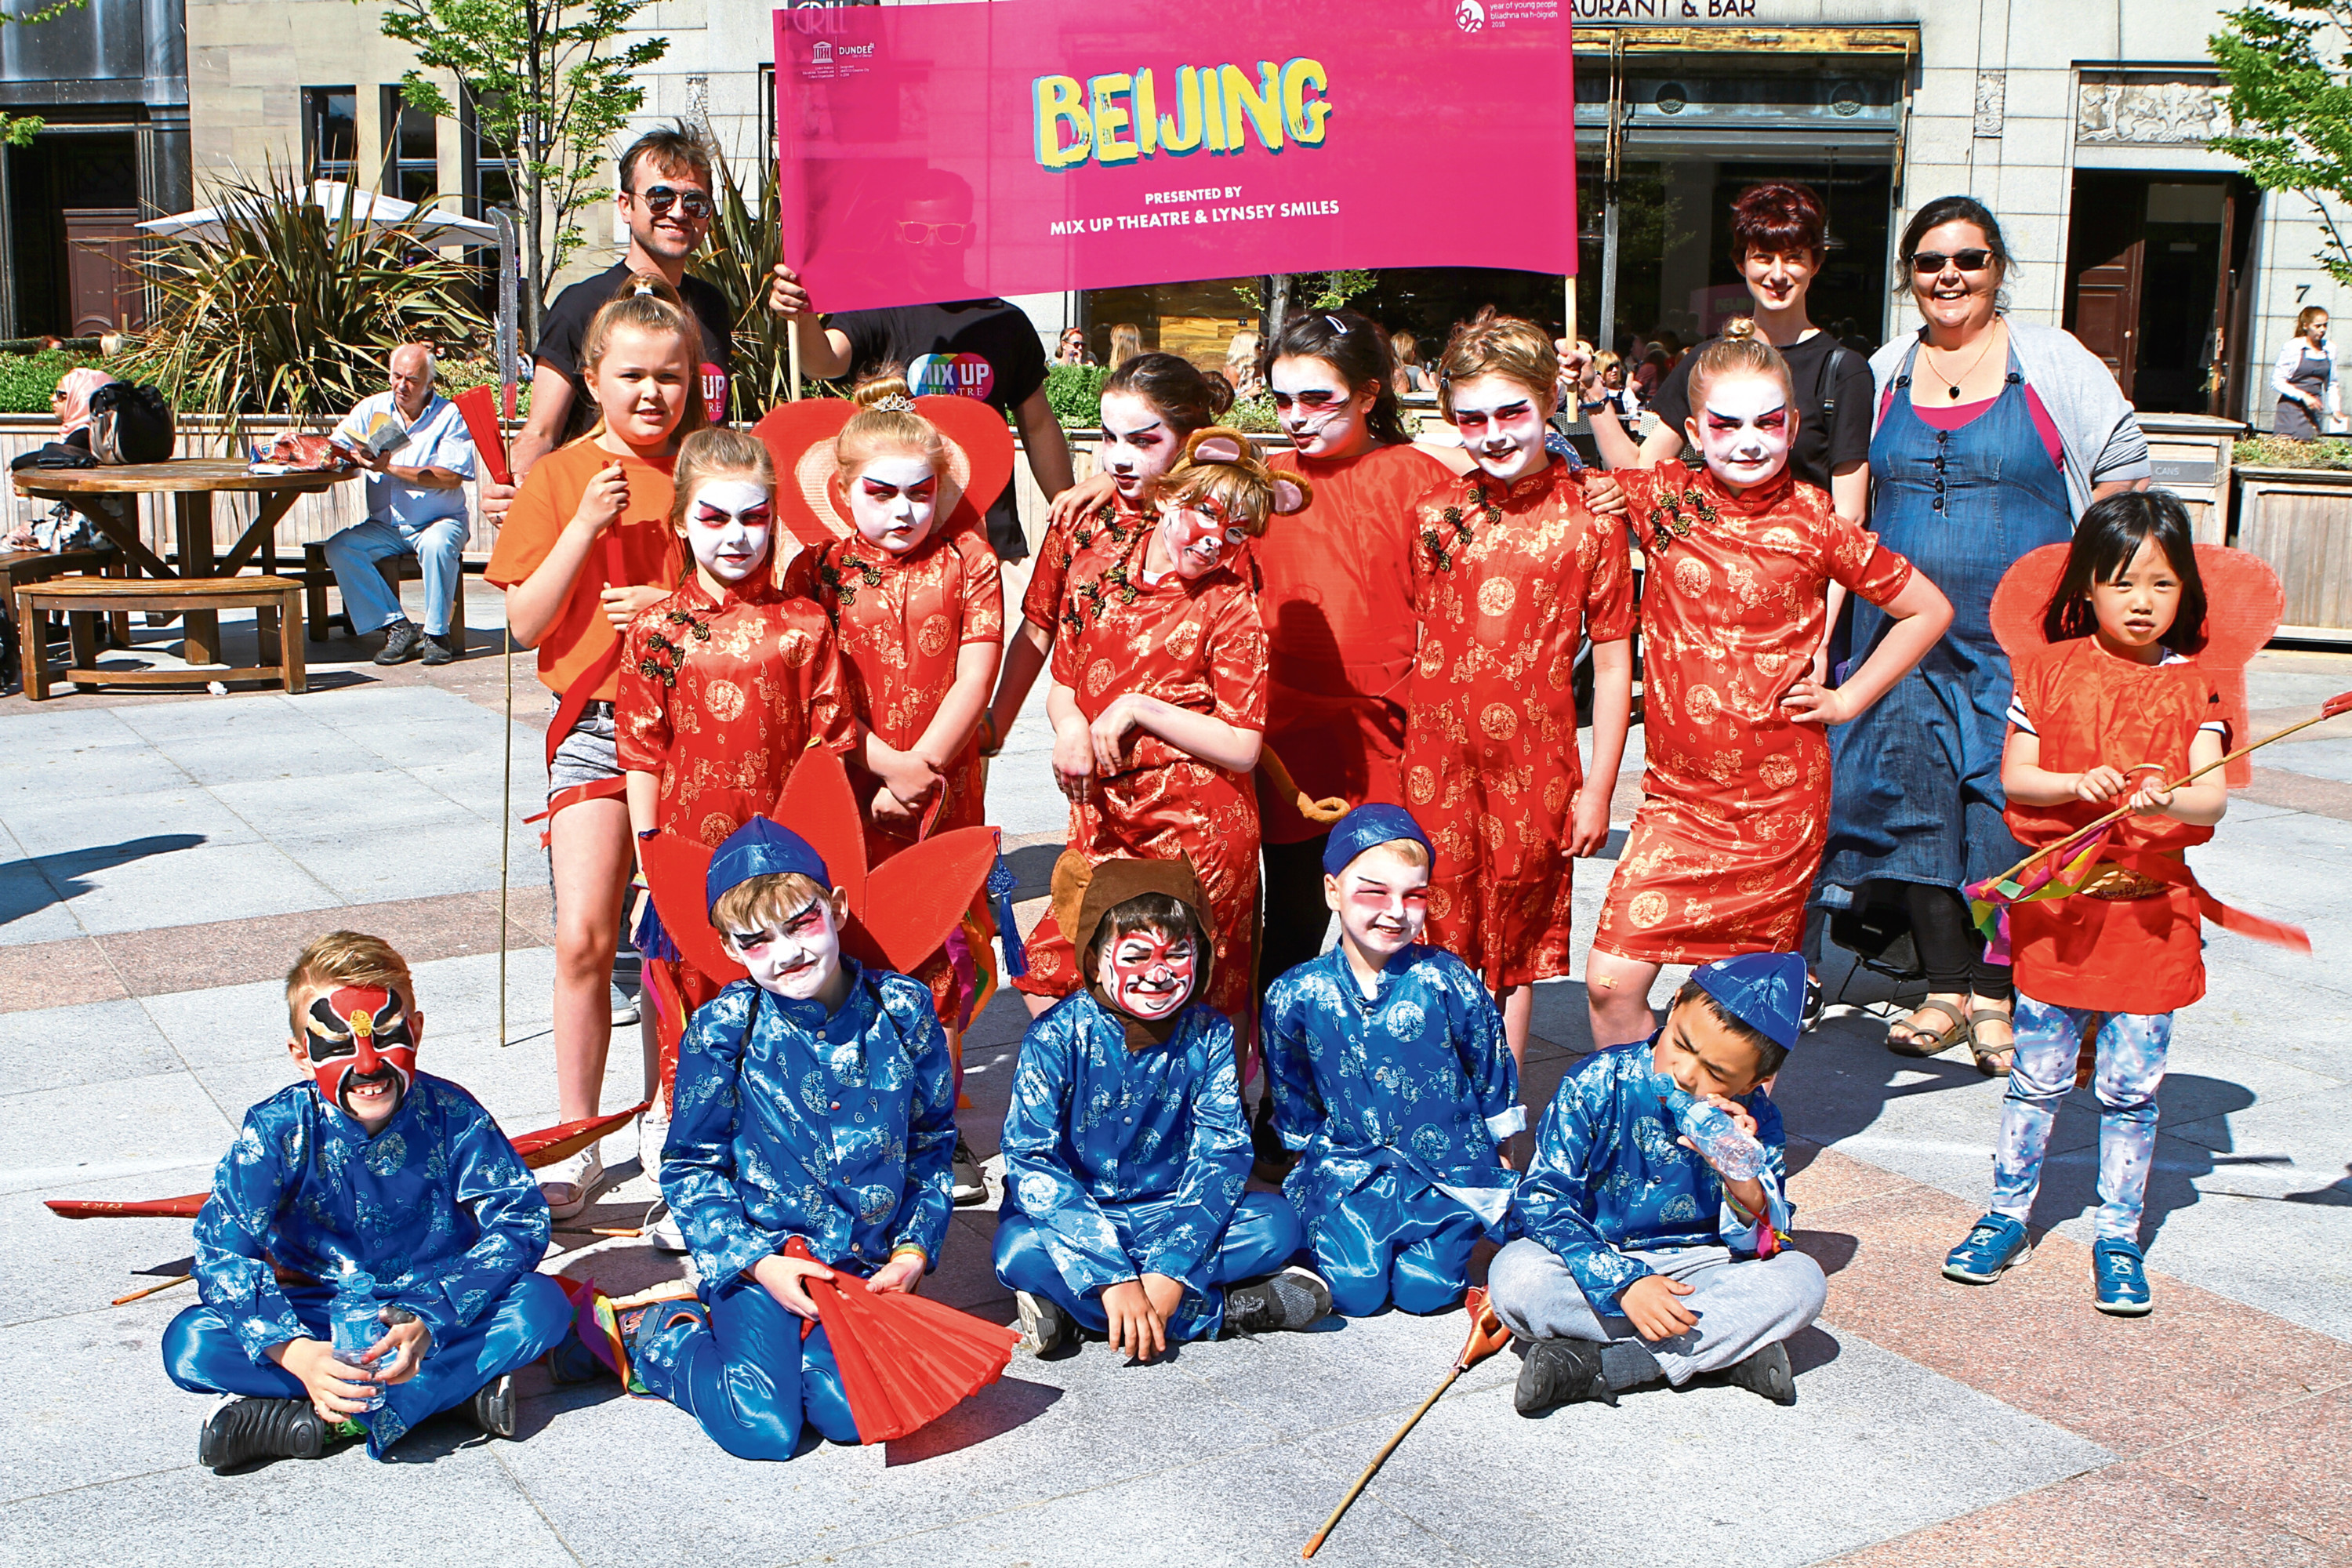 Courier News - Derek Healy story - Dundee Design Parade.  CR0001564 Picture shows; the group from the Mix Up Theatre pose for the camera, at the Dundee Design Parade, in Dundee City Centre today. Saturday 26th May 2018.